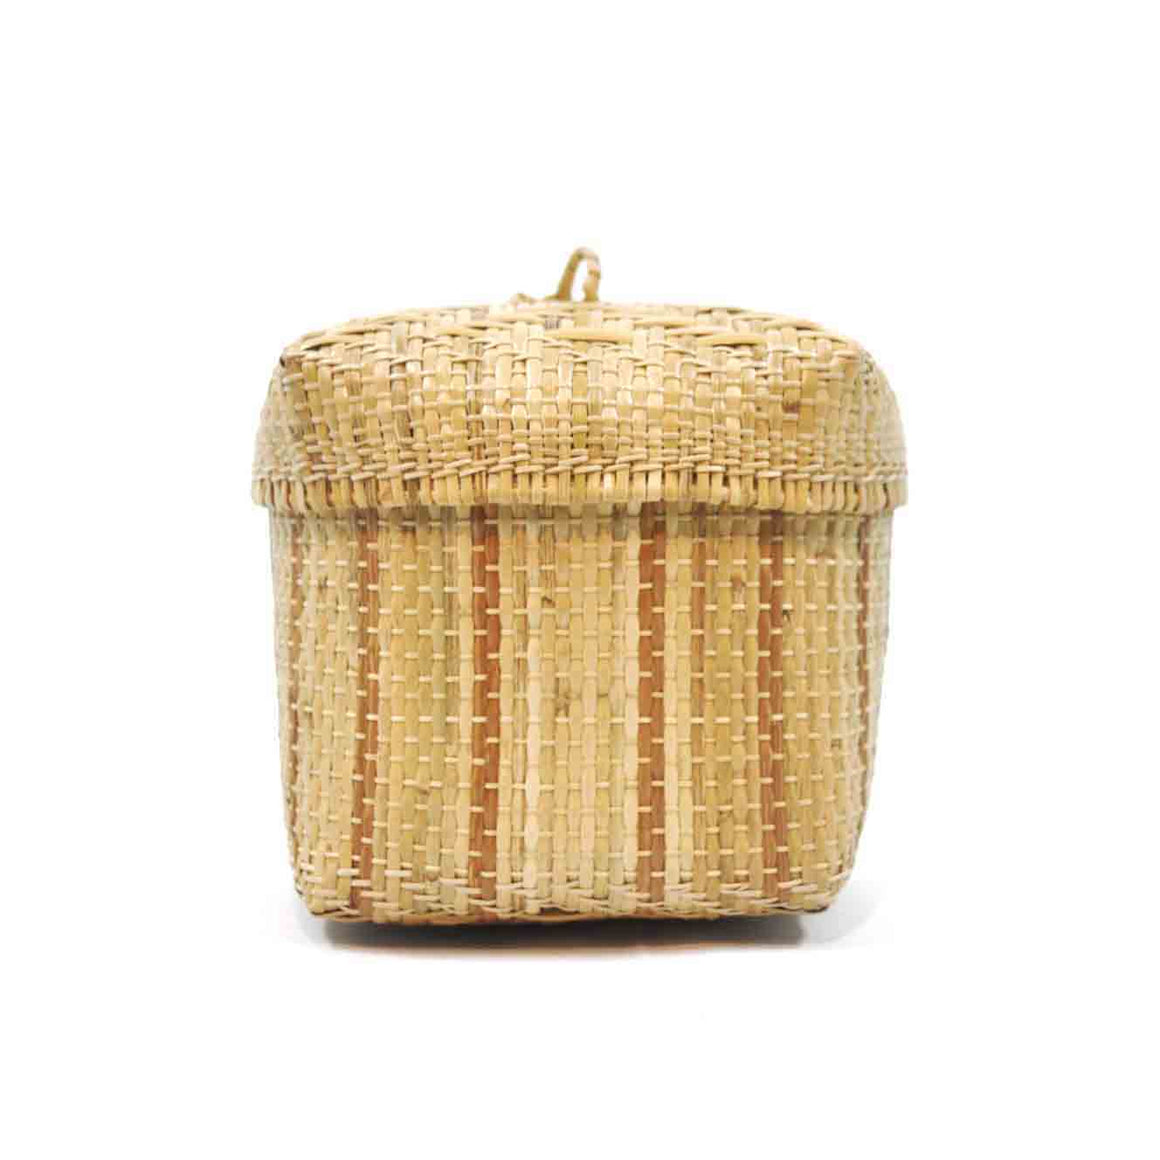 Bidayuh Lidded Storage Basket (Tombok)